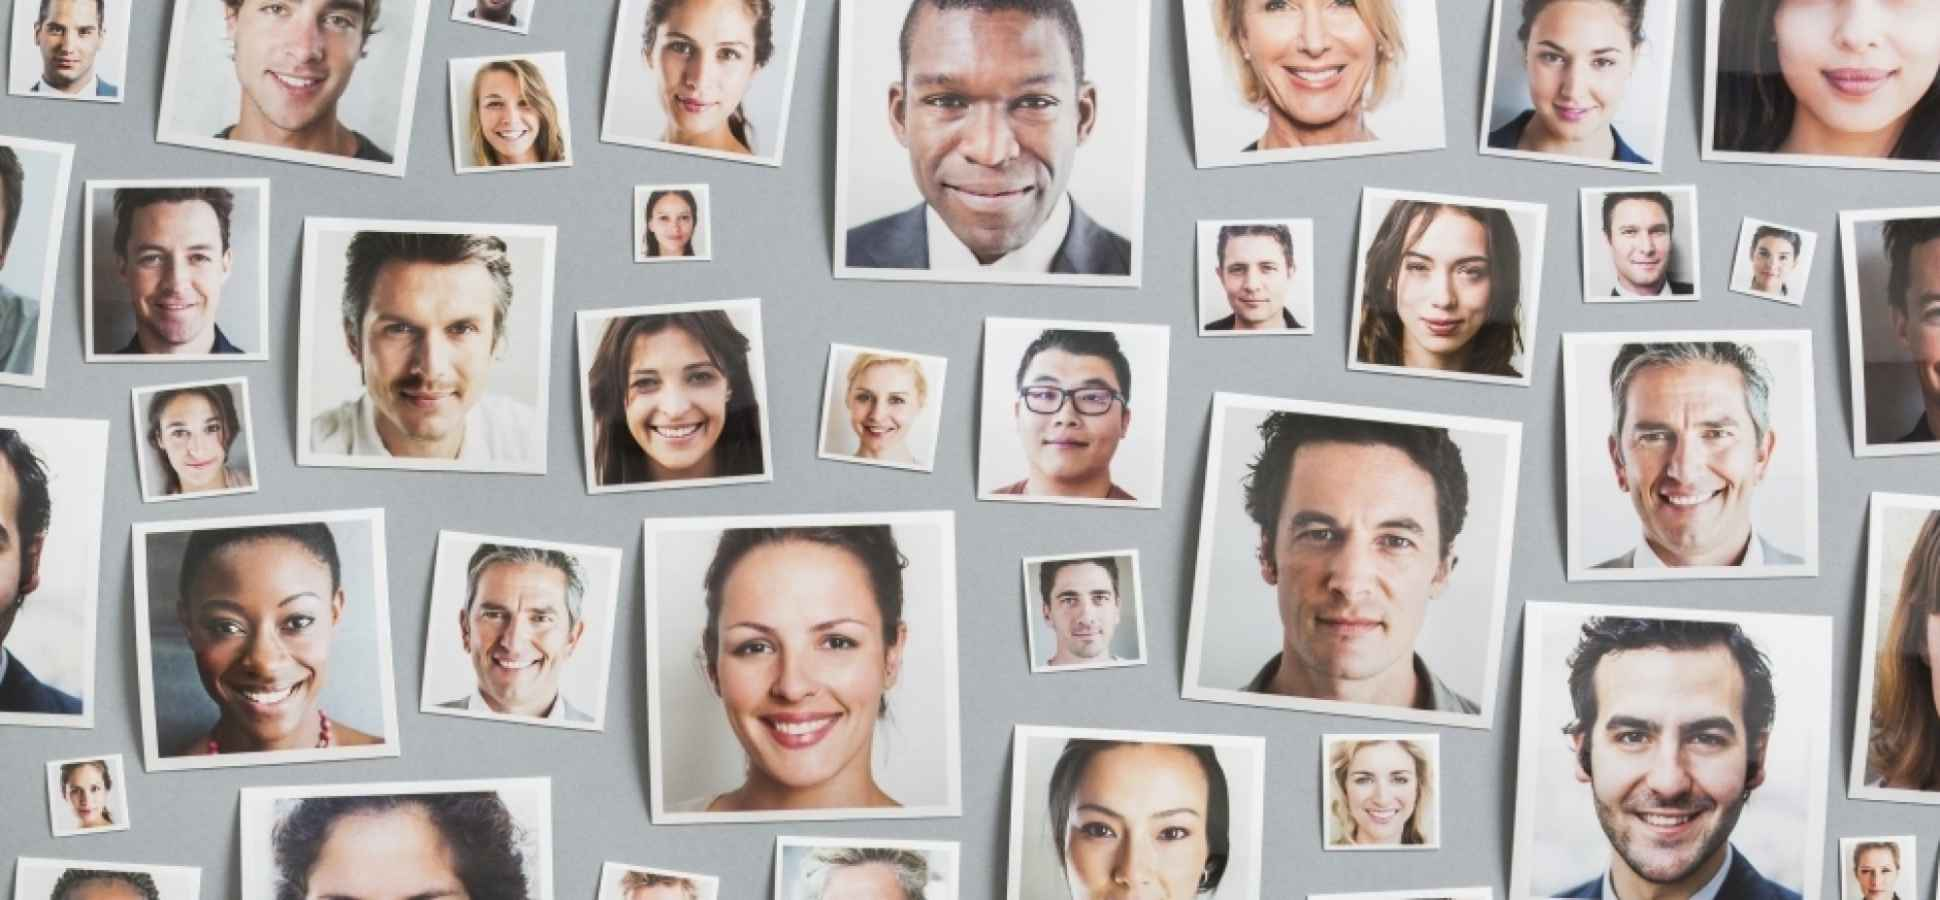 Why You Should Think Big When It Comes to Networking